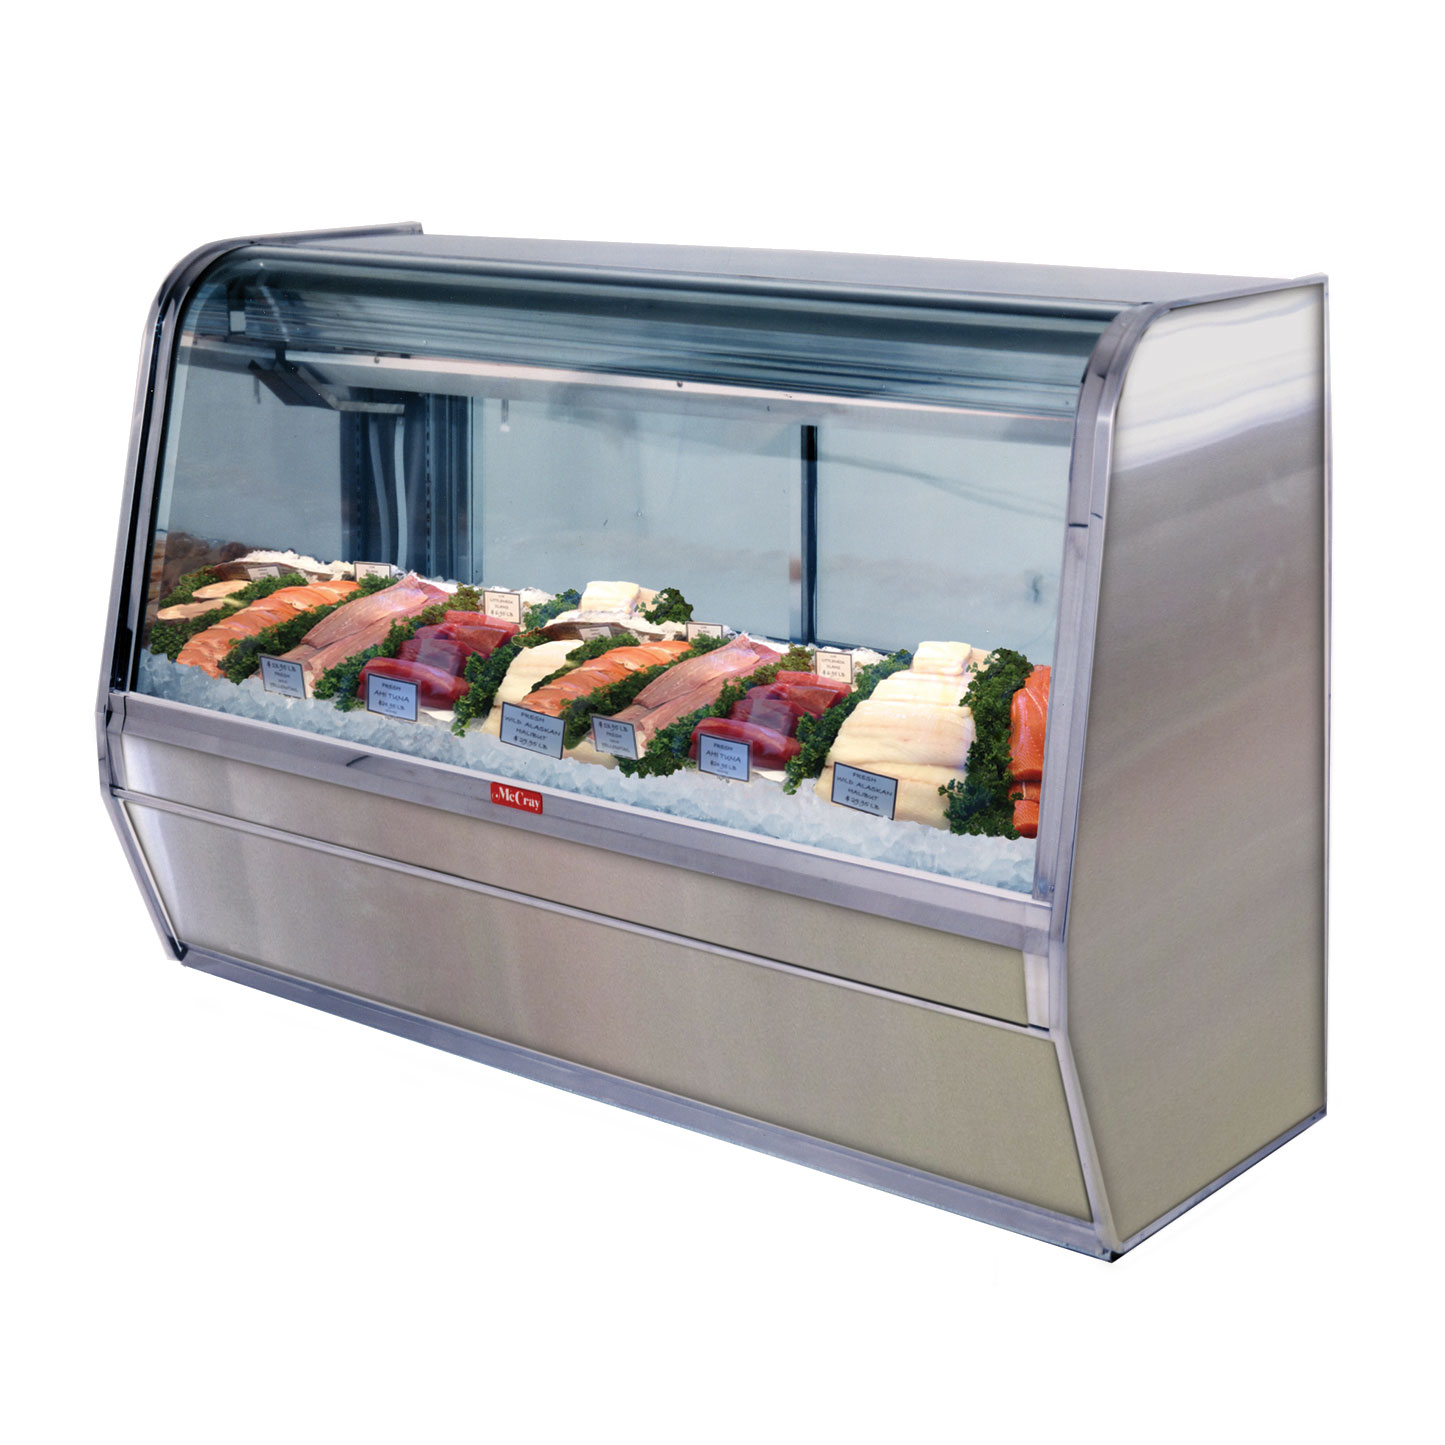 Howard-McCray SC-CFS32E-4C-S-LED display case, deli seafood / poultry